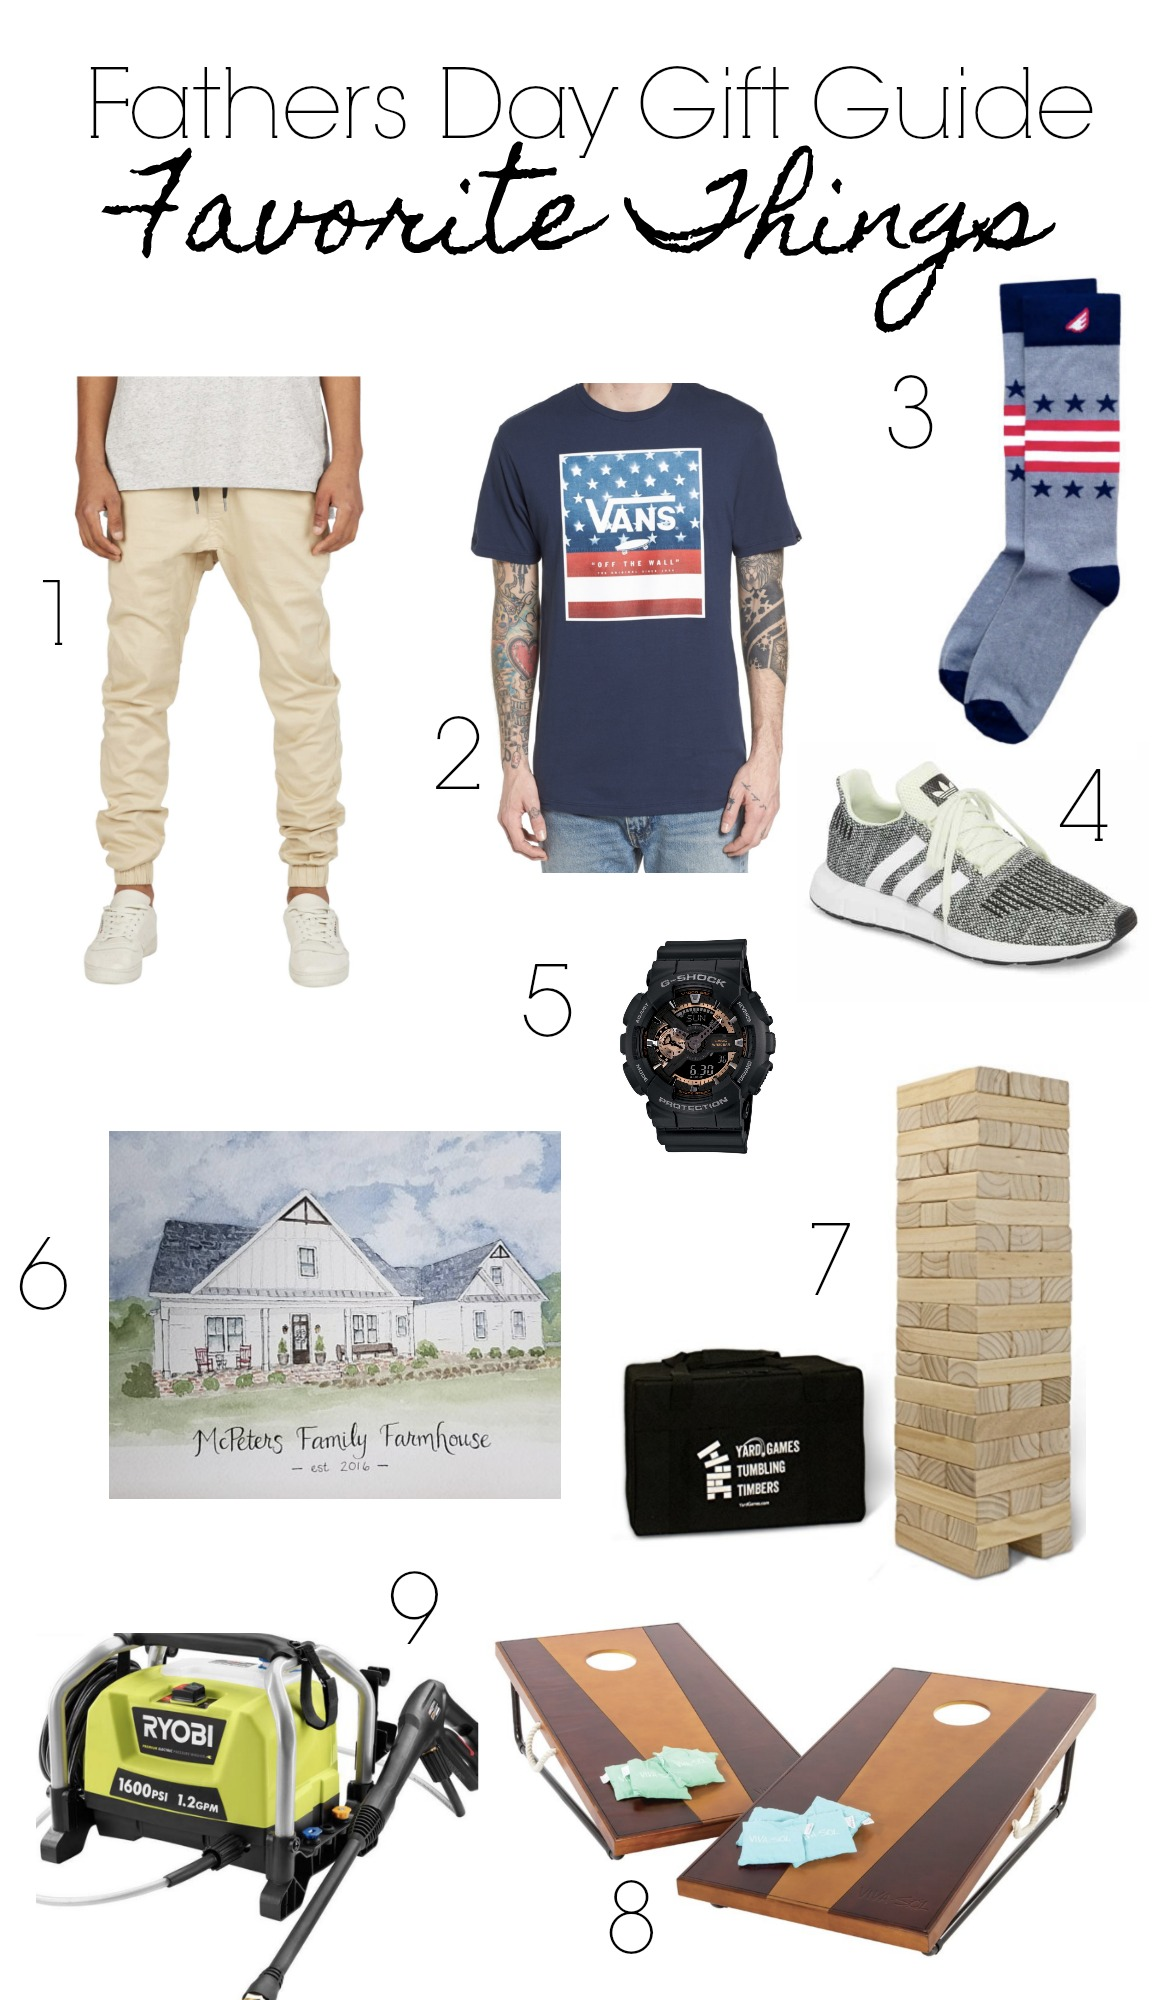 Fathers Day Gift Guide!